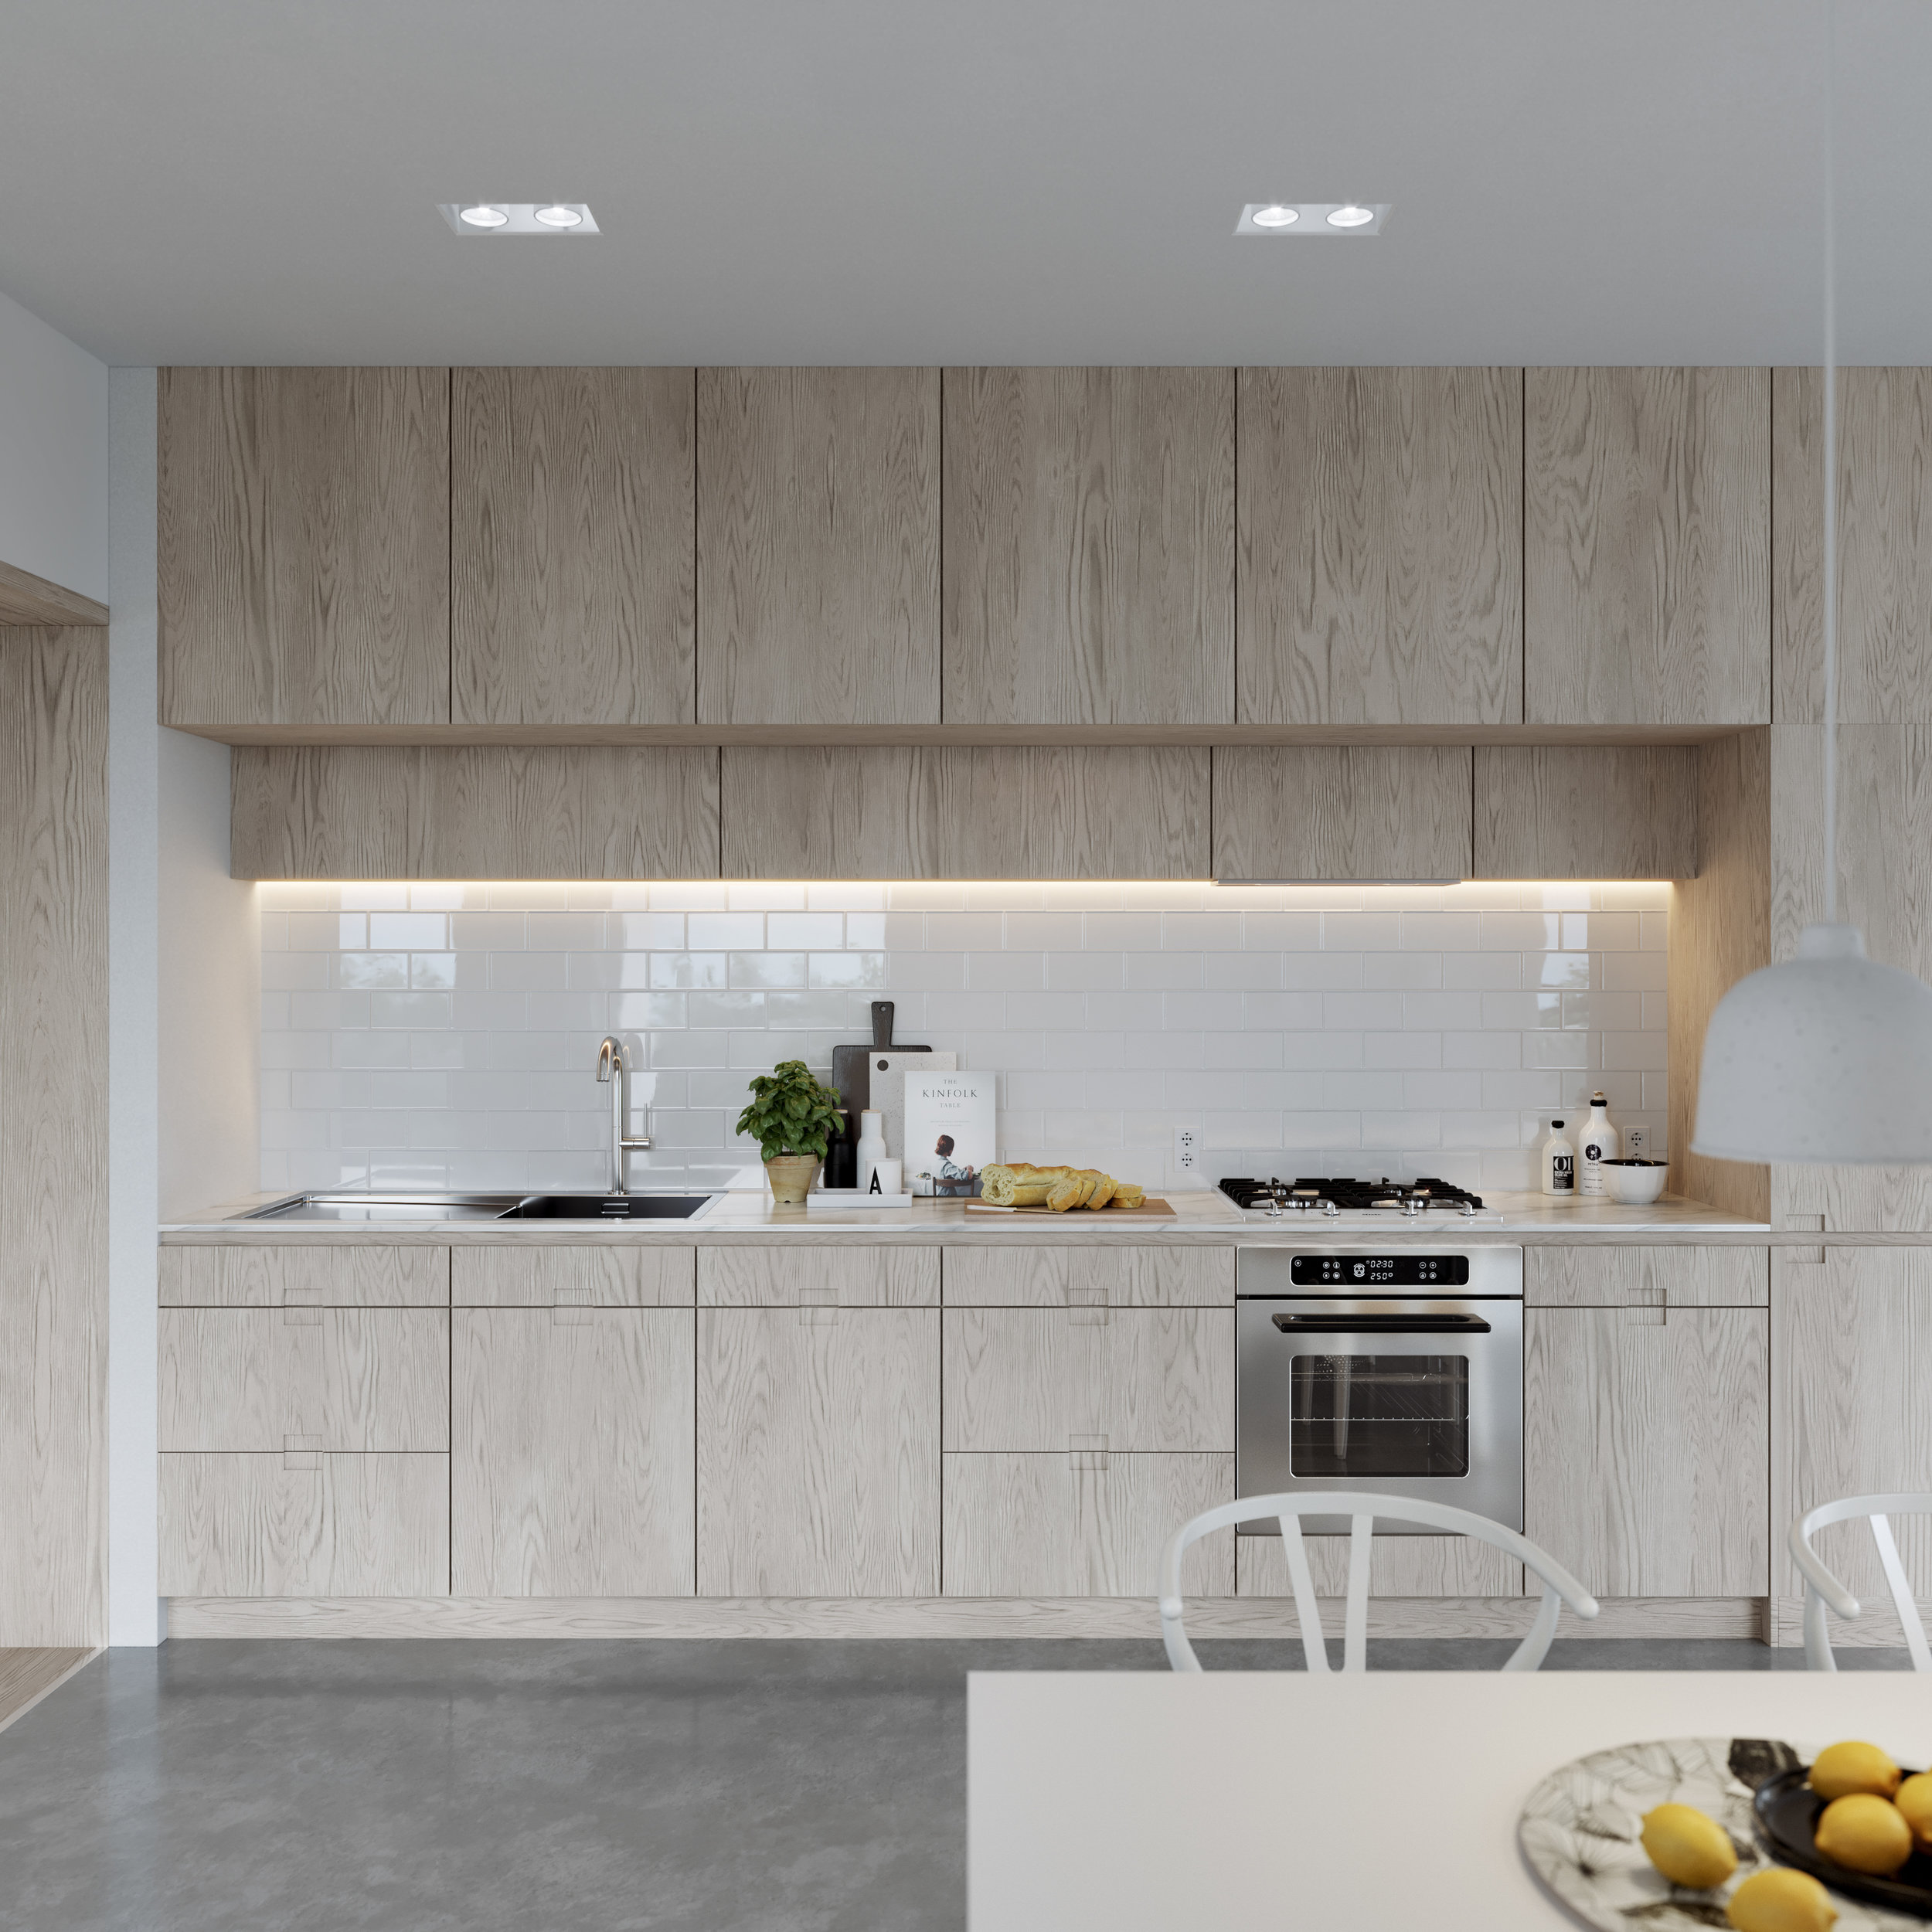 poliigon_task_wood_kitchen.jpg